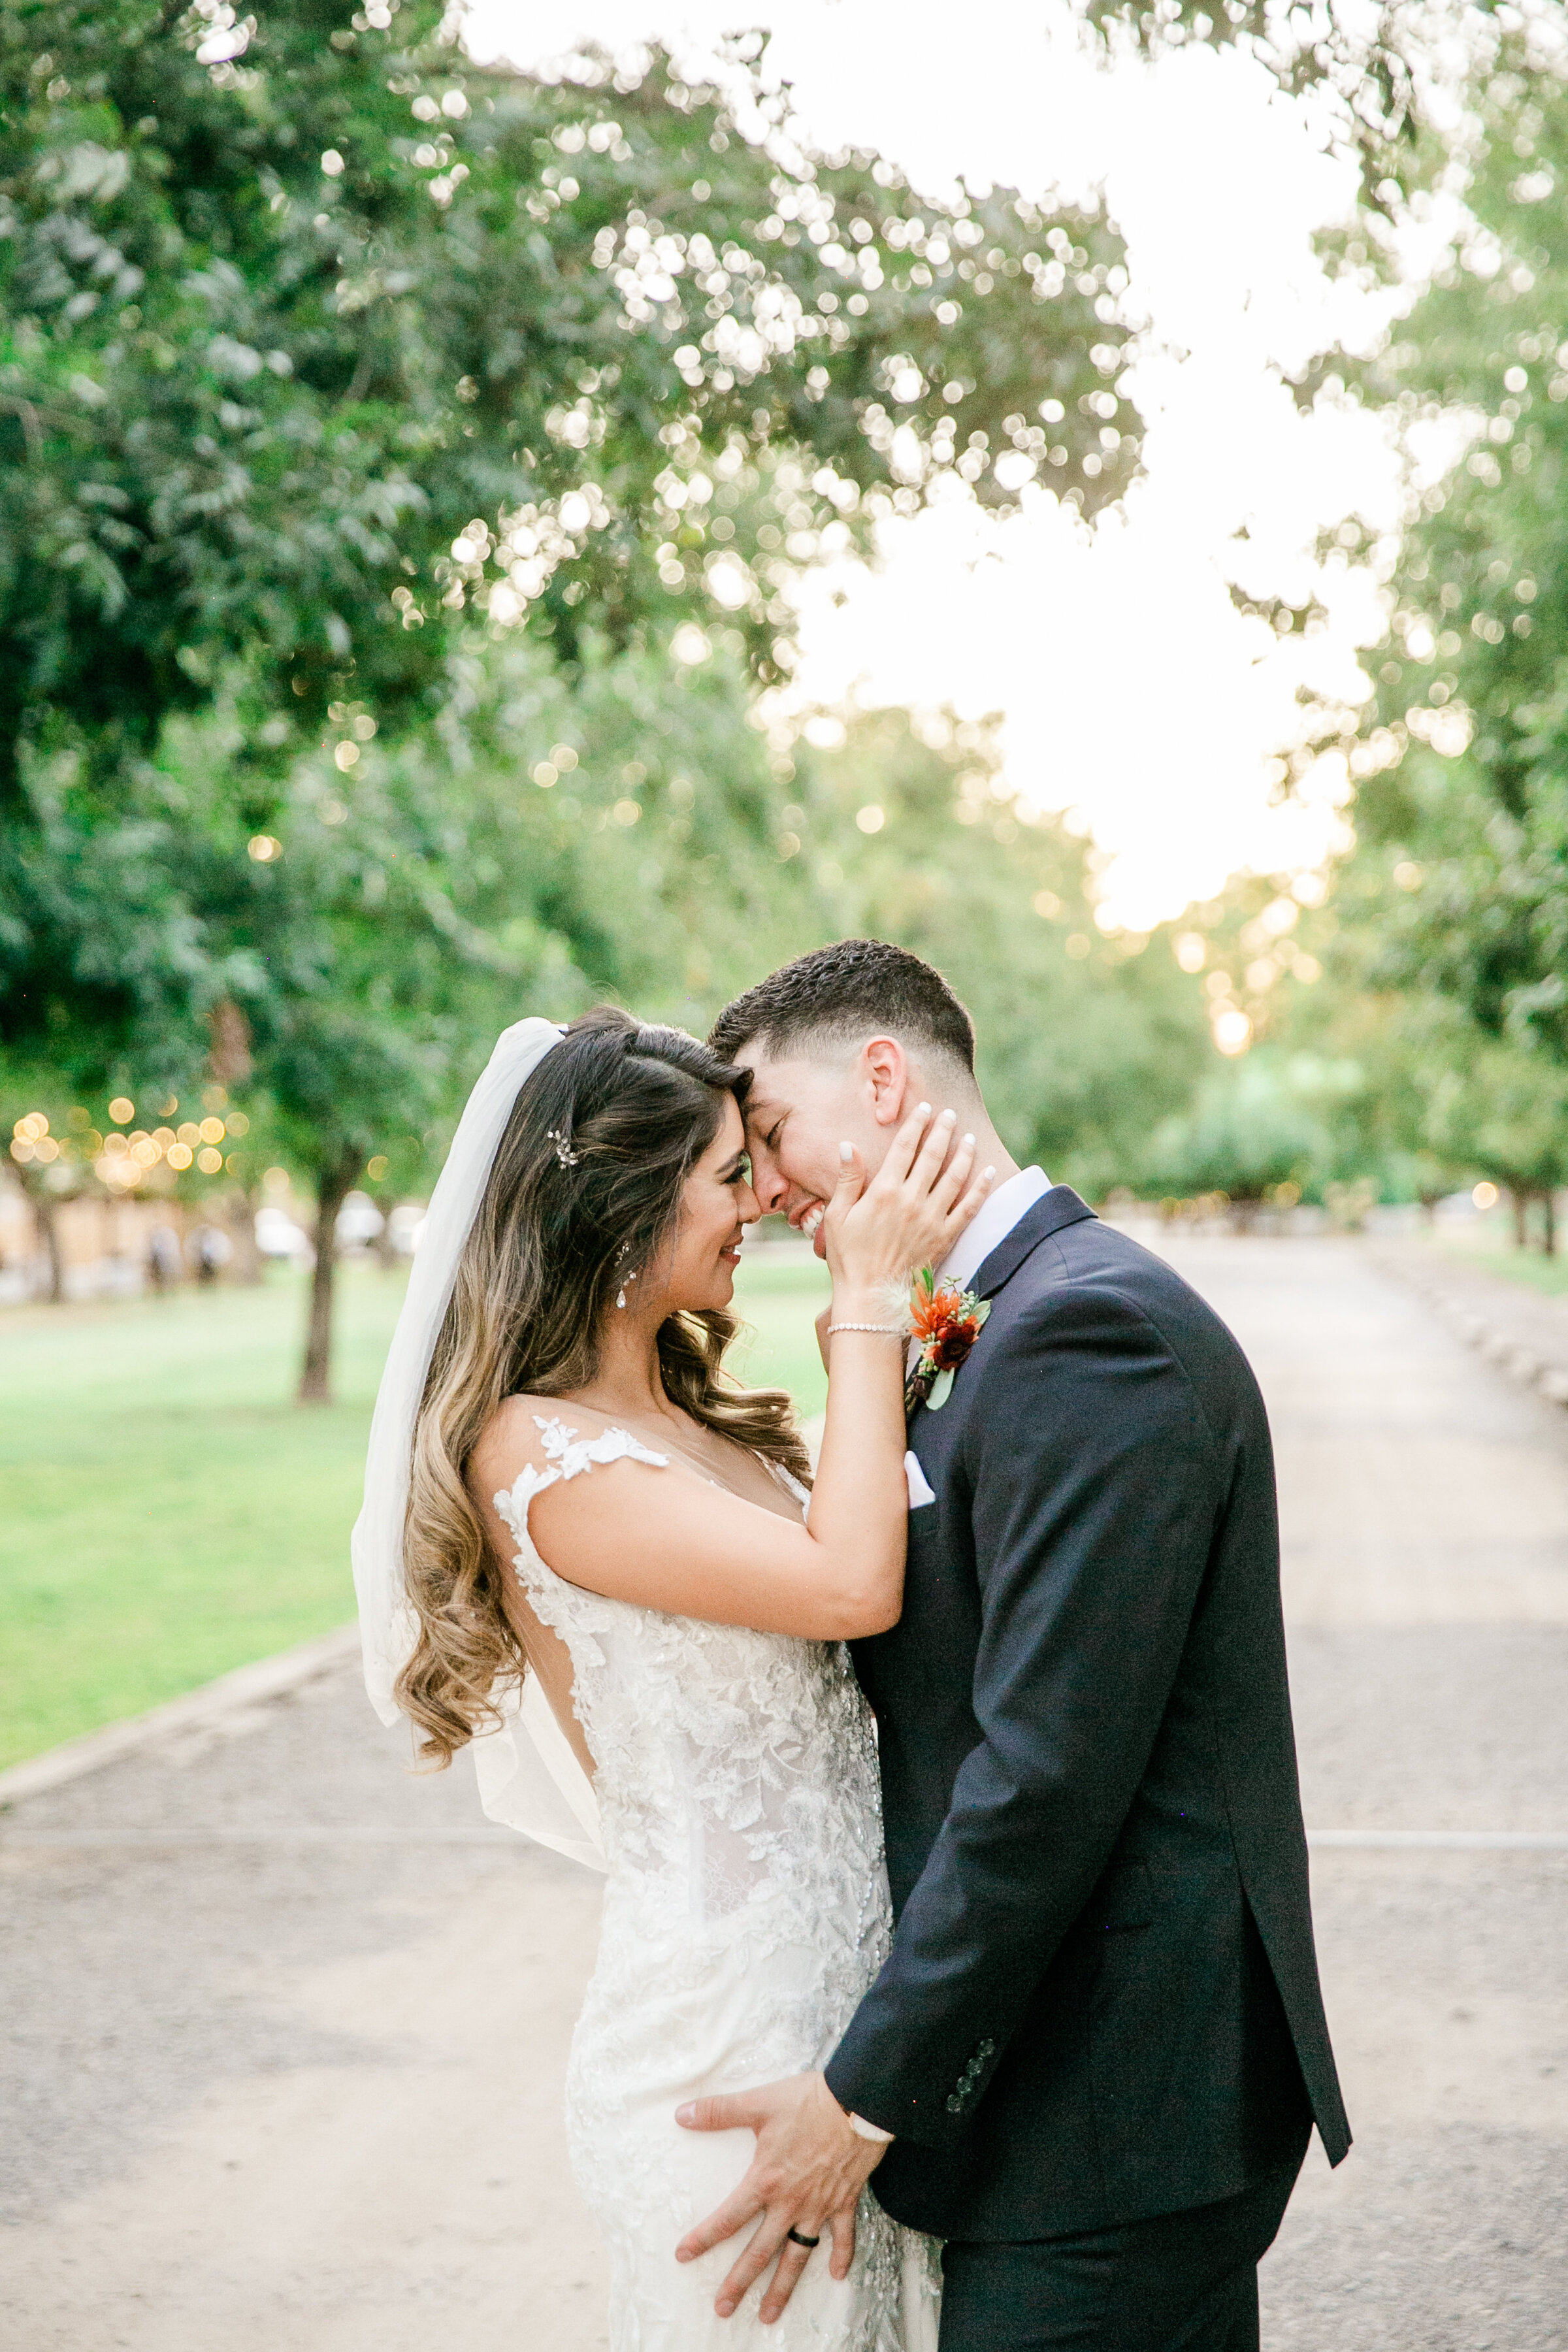 Karlie Colleen Photography - Phoenix Arizona - Farm At South Mountain Venue - Vanessa & Robert-714